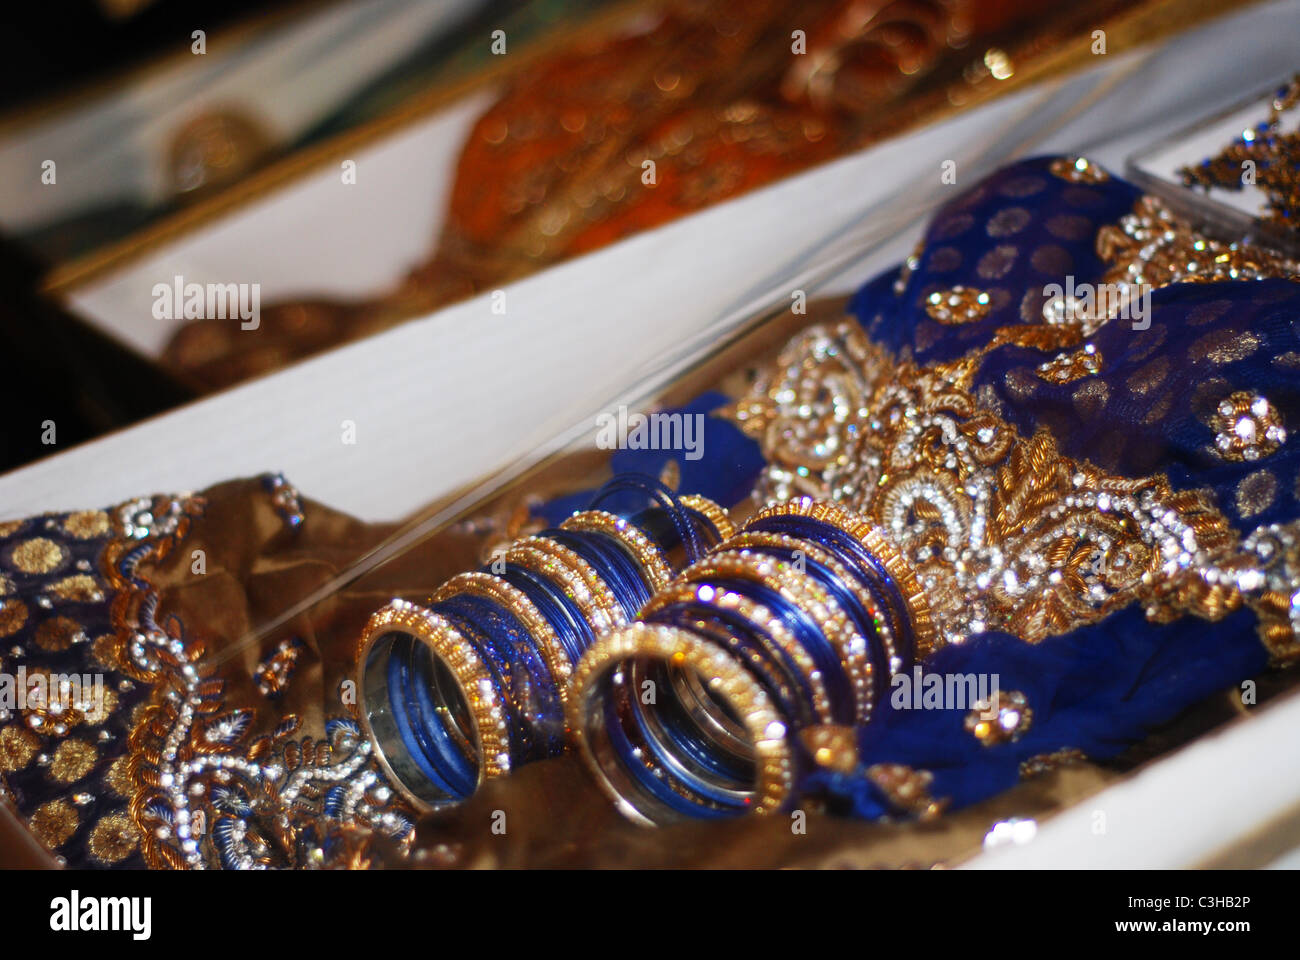 Colourful bangles and elaborate clothes assembled as gifts for a Muslim bride as part of her wedding ceremony. - Stock Image